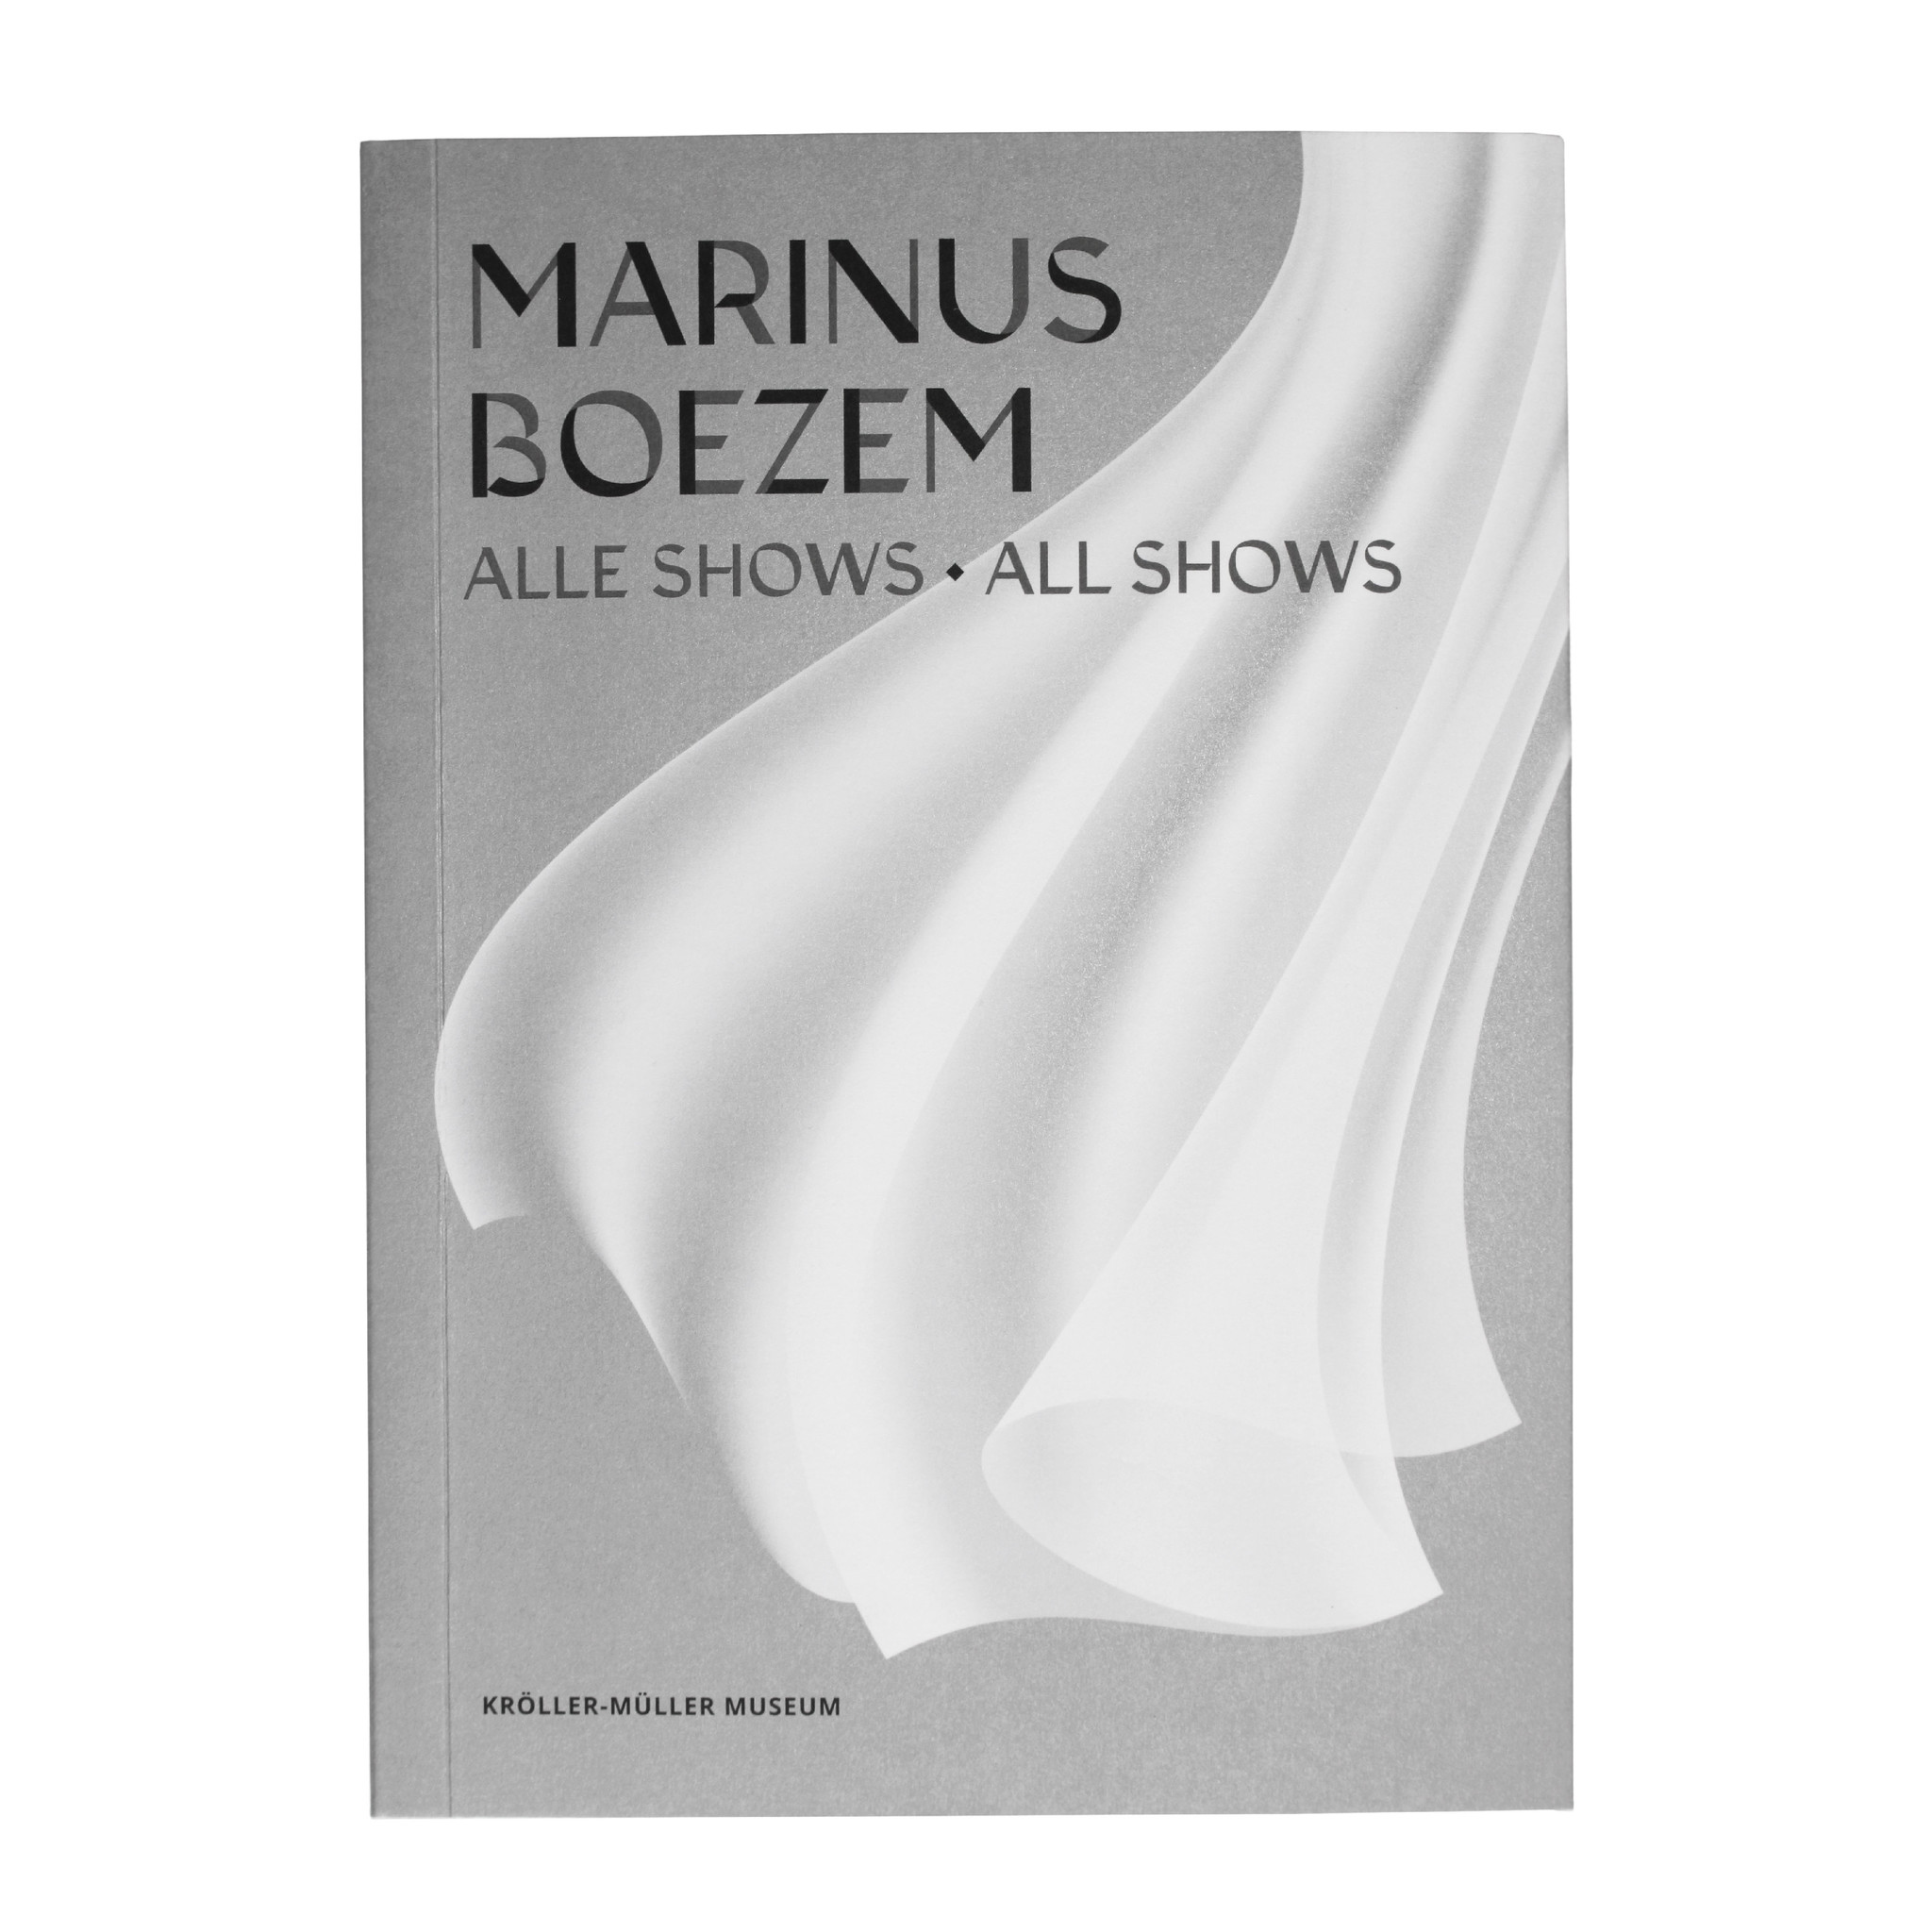 Marinus Boezem. All shows - limited edition